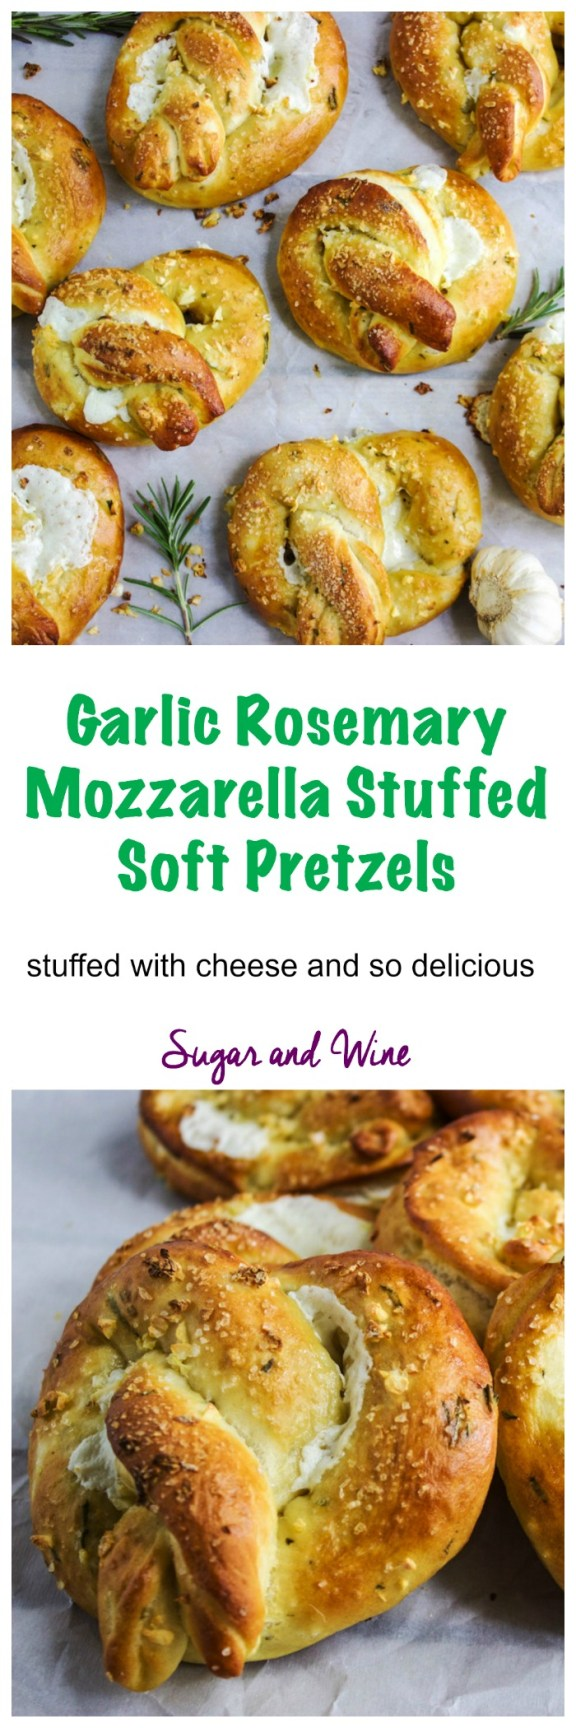 Garlic Rosemary Mozzarella Stuffed Soft Pretzels | Sugar and Wine